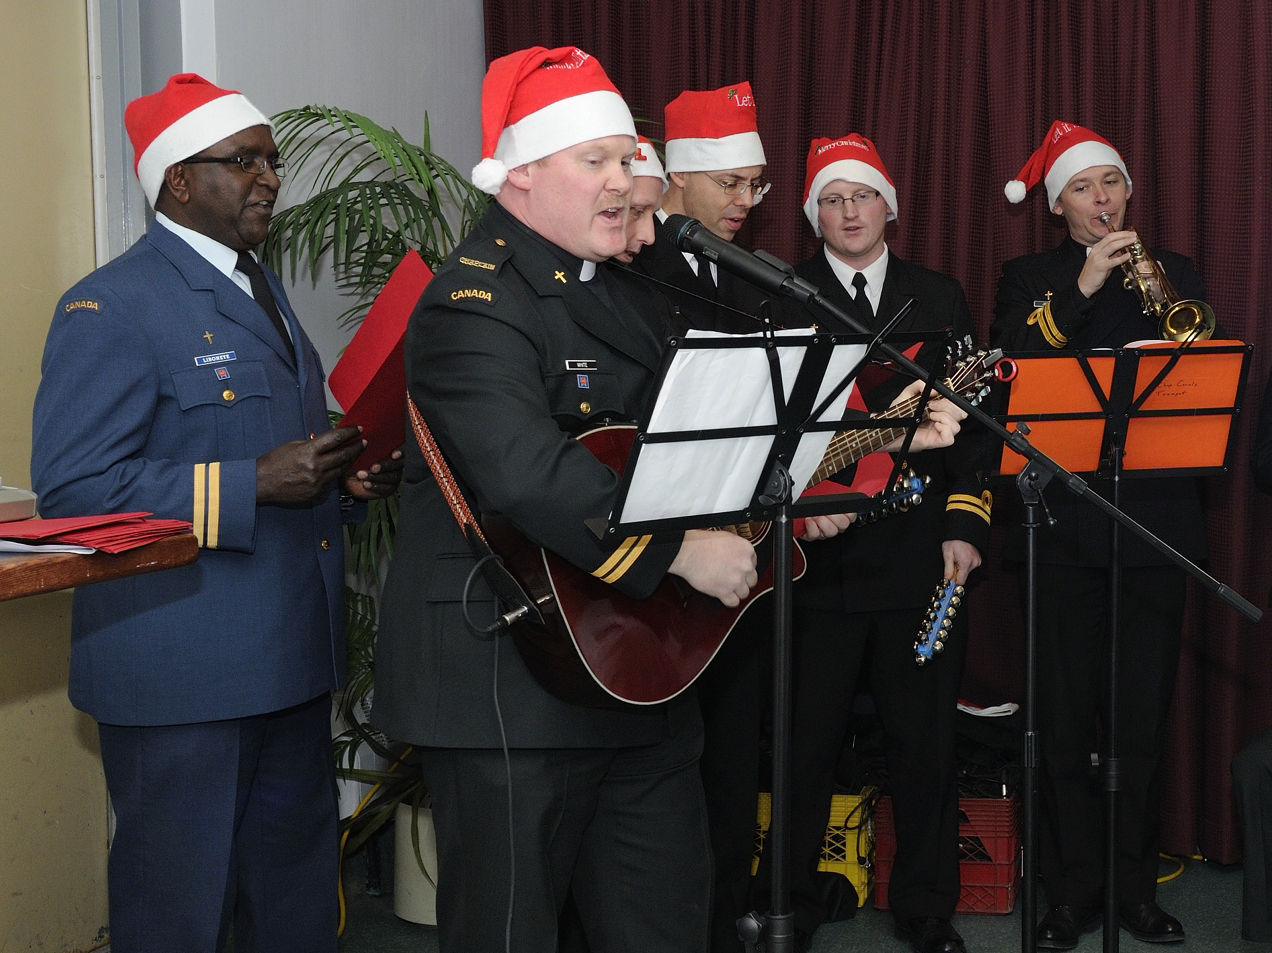 Music and song is always a part of Christmas celebrations. Here, Canadian Armed Forces chaplains serenade guests at the annual junior ranks Christmas dinner at 12 Wing Shearwater on December 12, 2013. PHOTO: Master Corporal Maggie Gosse